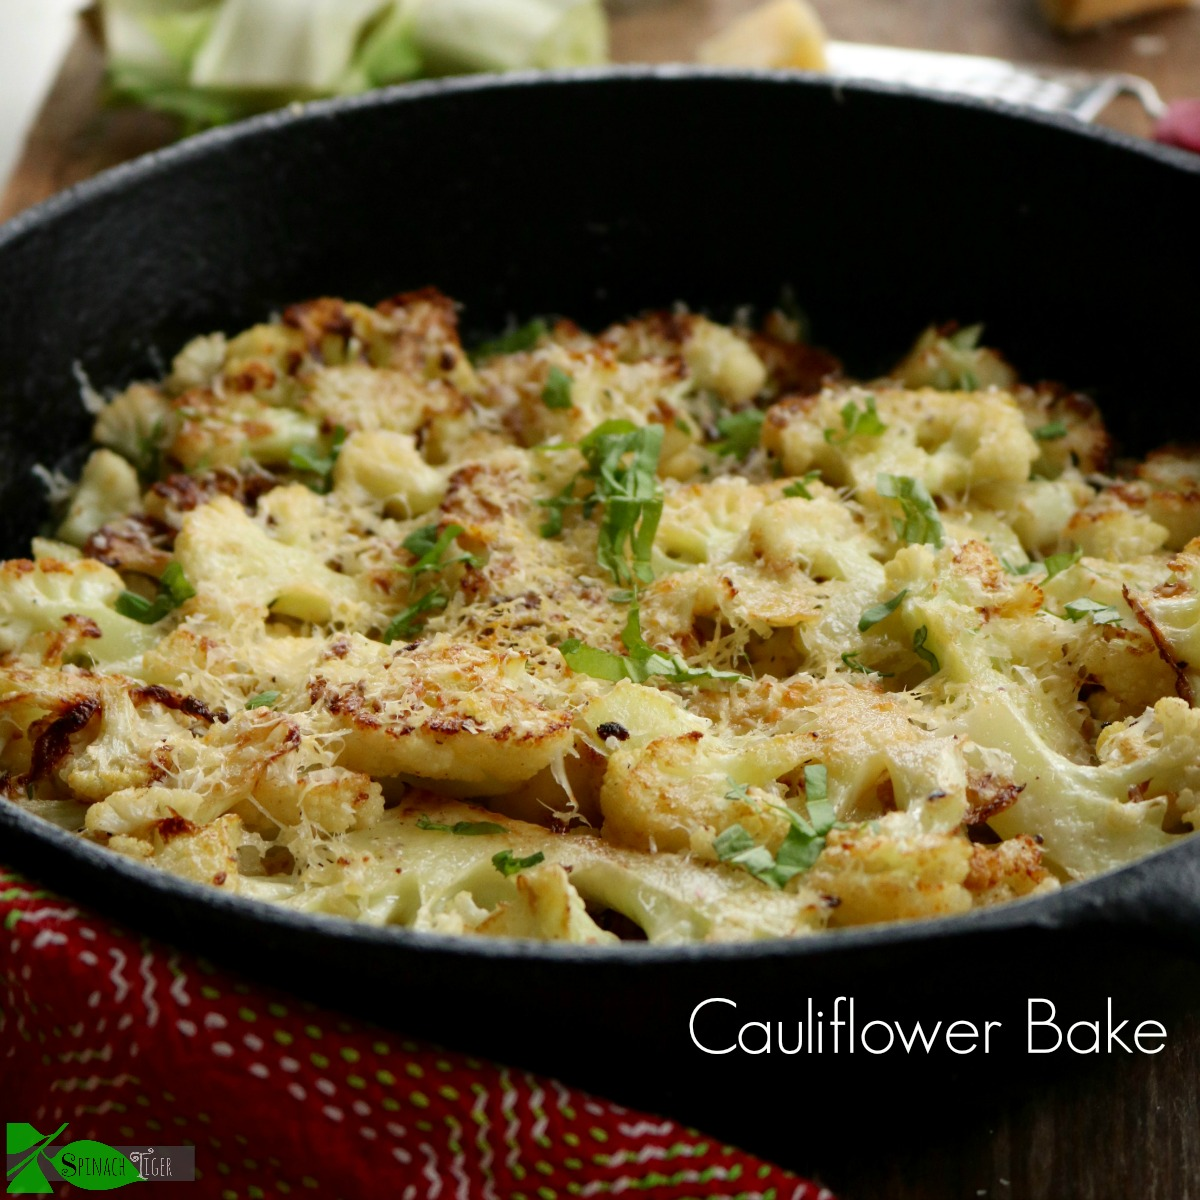 The BEST Oven Roasted Cauliflower Recipe with Butter and Parmesan from Spinach Tiger